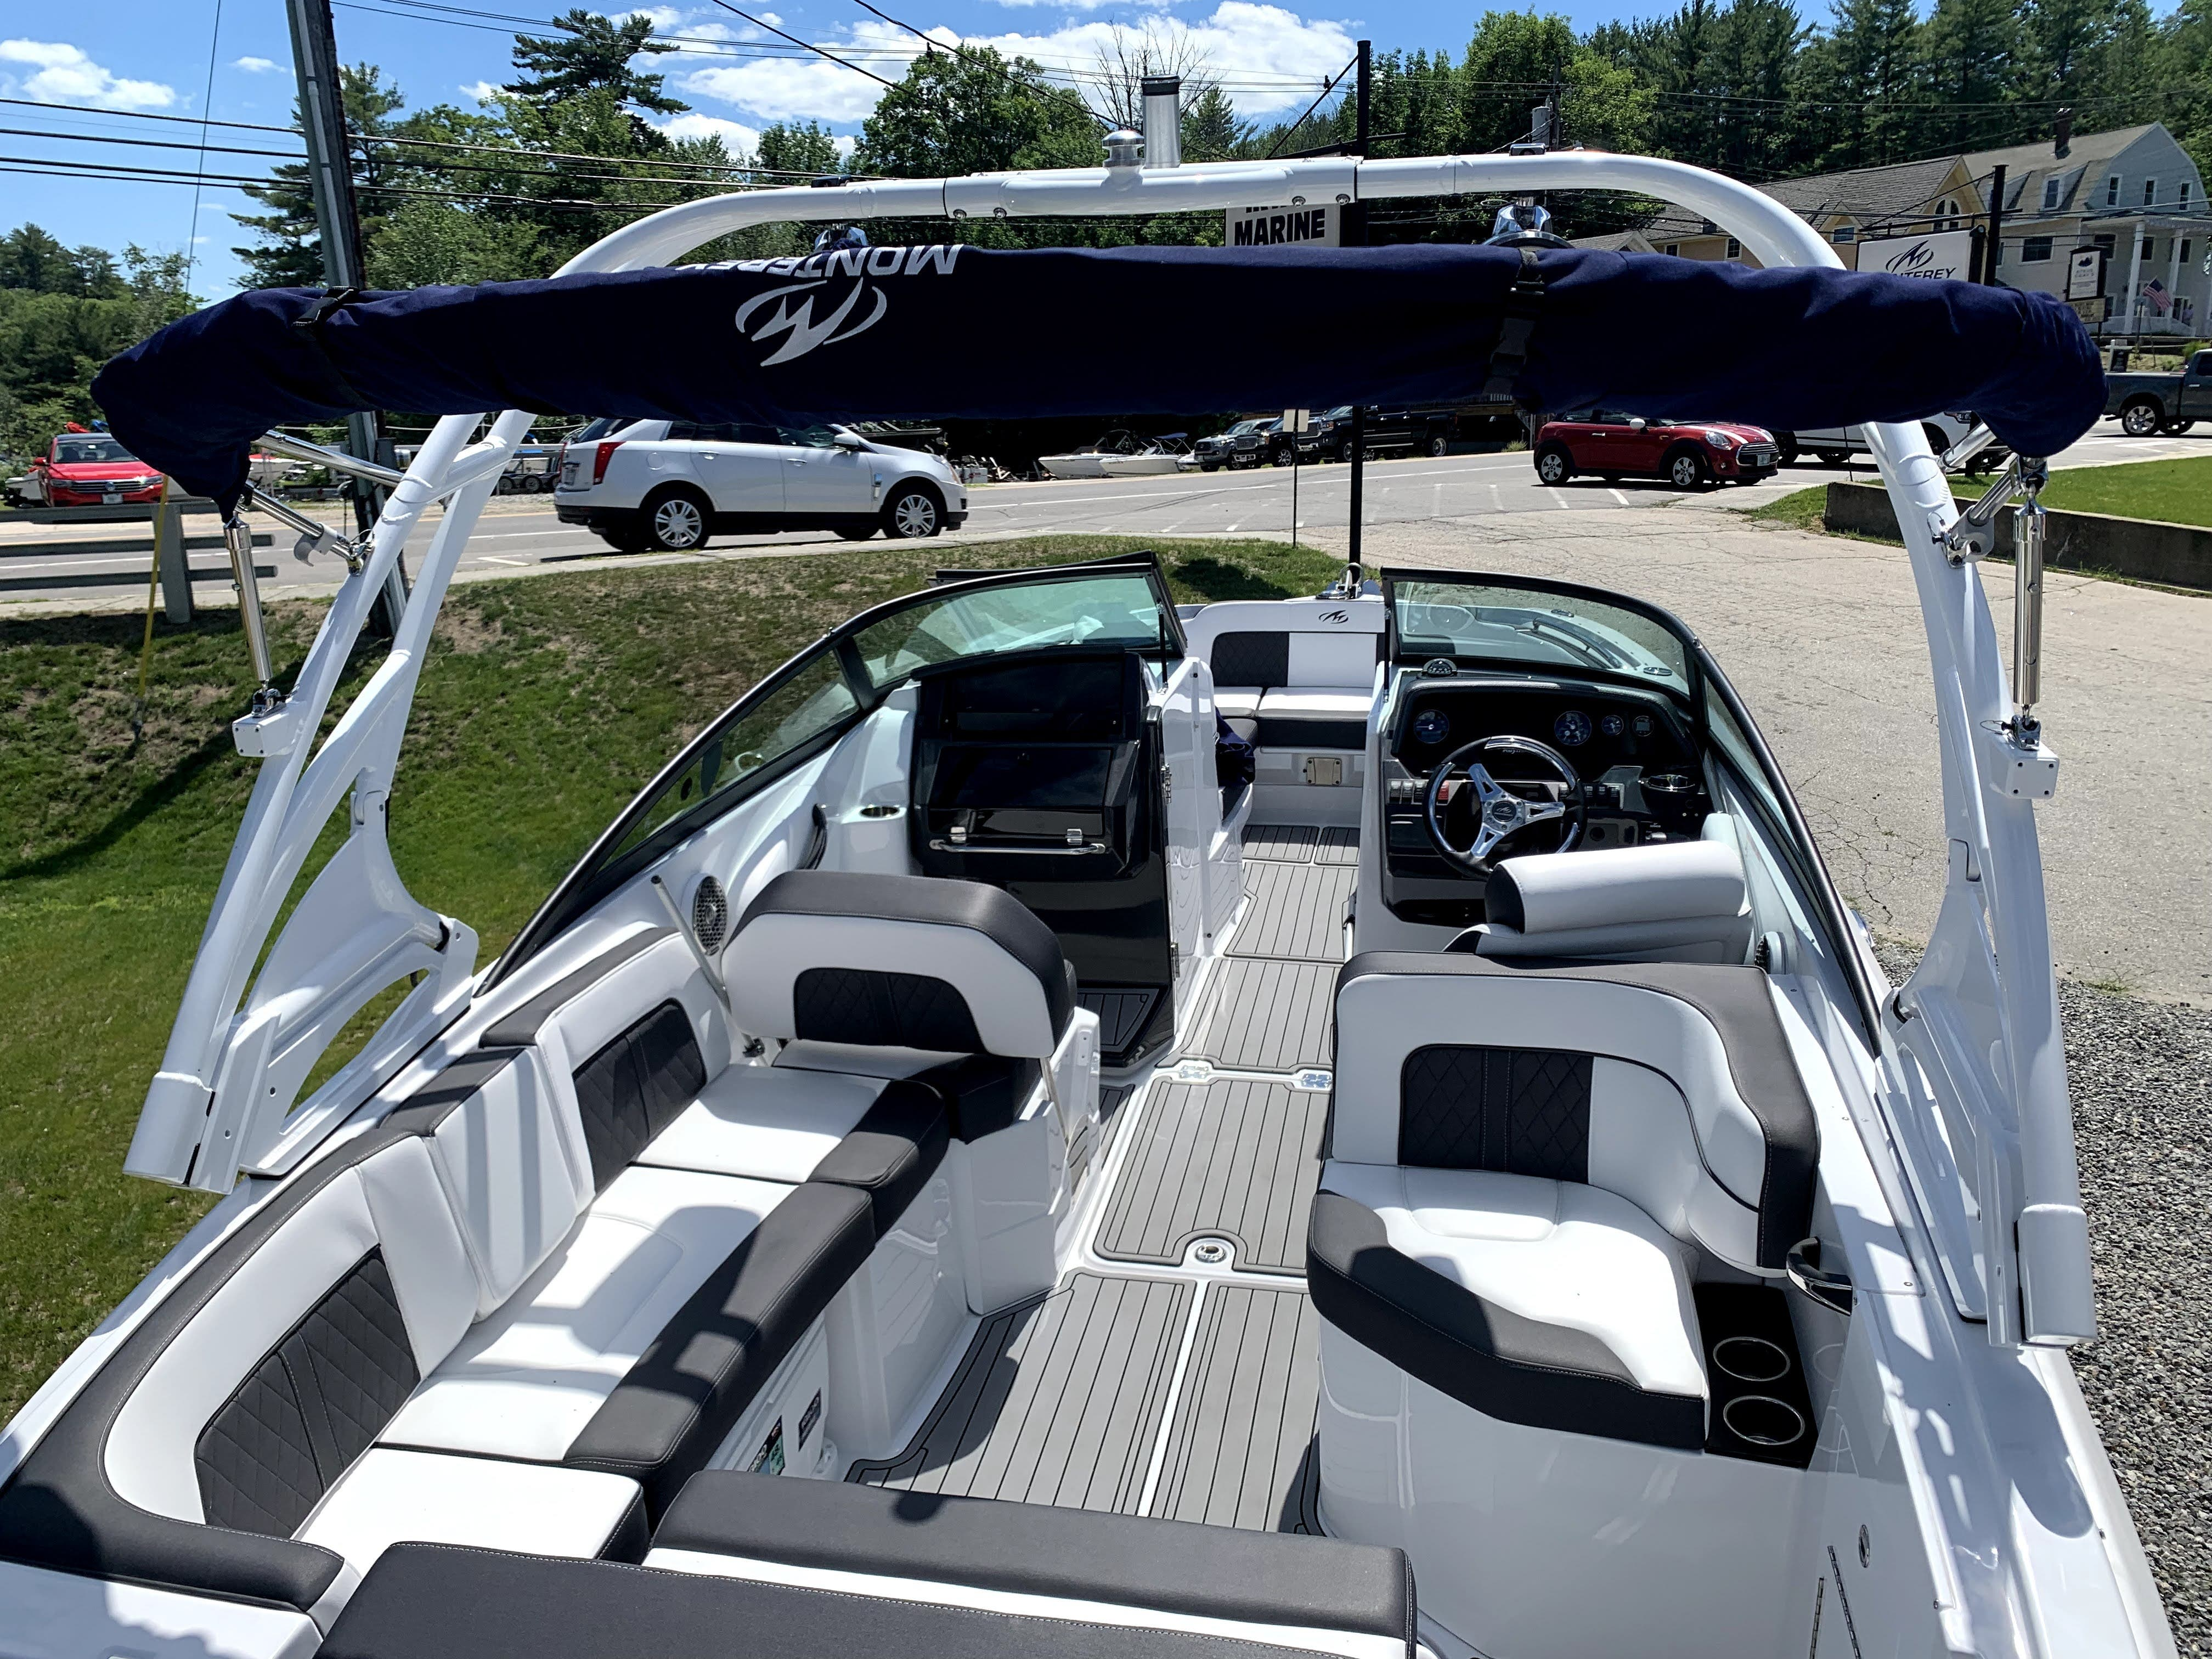 2021 Monterey boat for sale, model of the boat is M65 & Image # 3 of 12